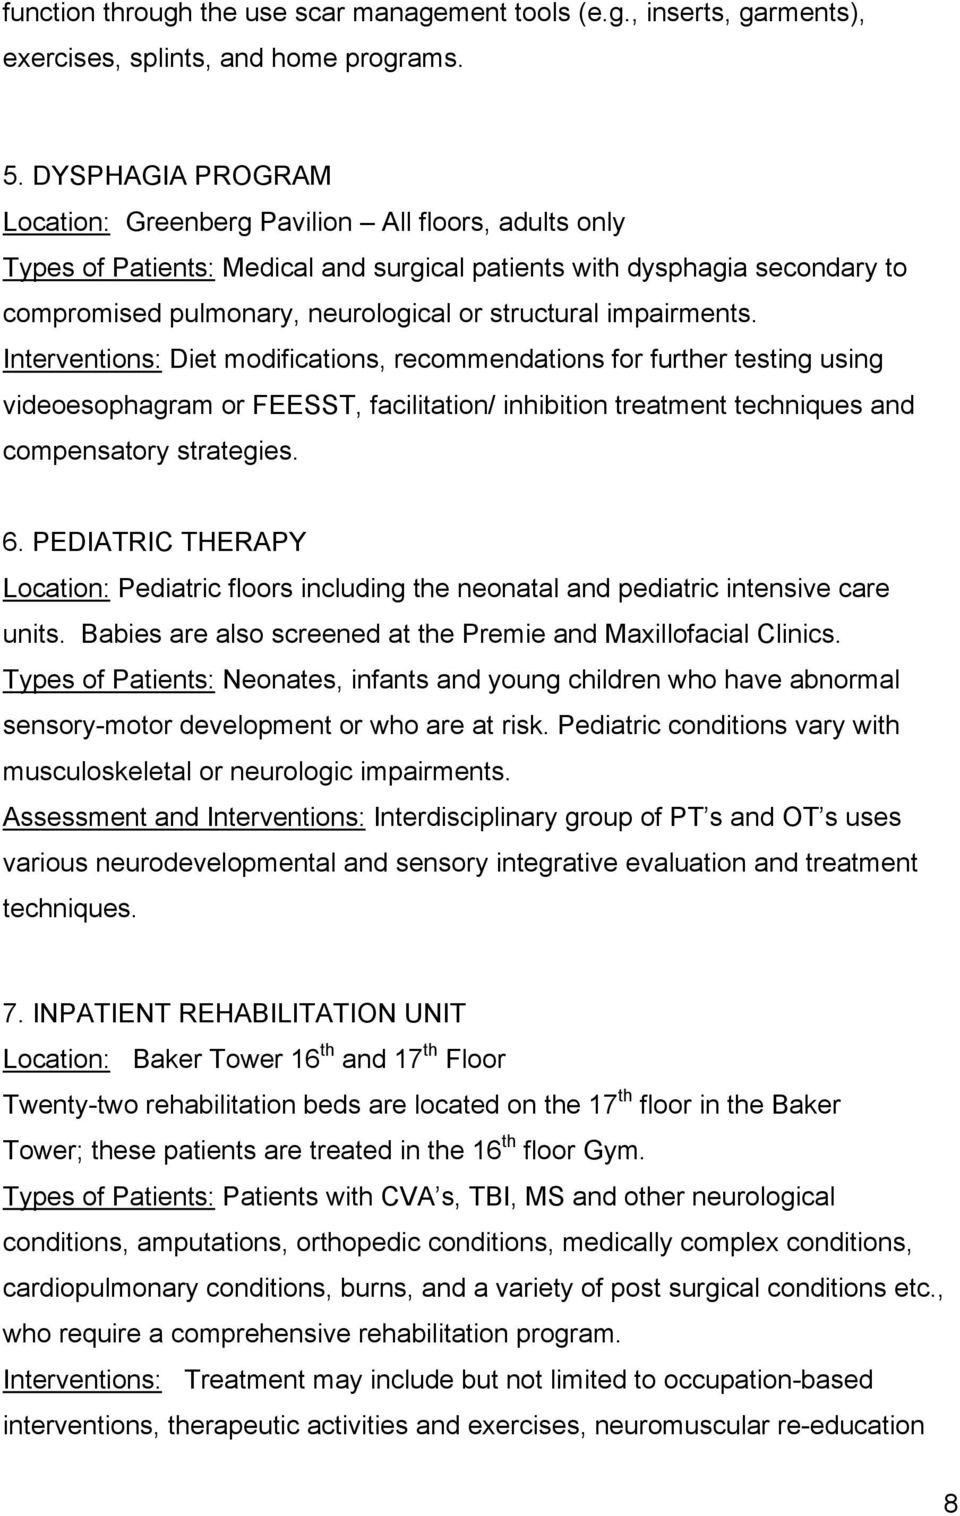 impairments. Interventions: Diet modifications, recommendations for further testing using videoesophagram or FEESST, facilitation/ inhibition treatment techniques and compensatory strategies. 6.